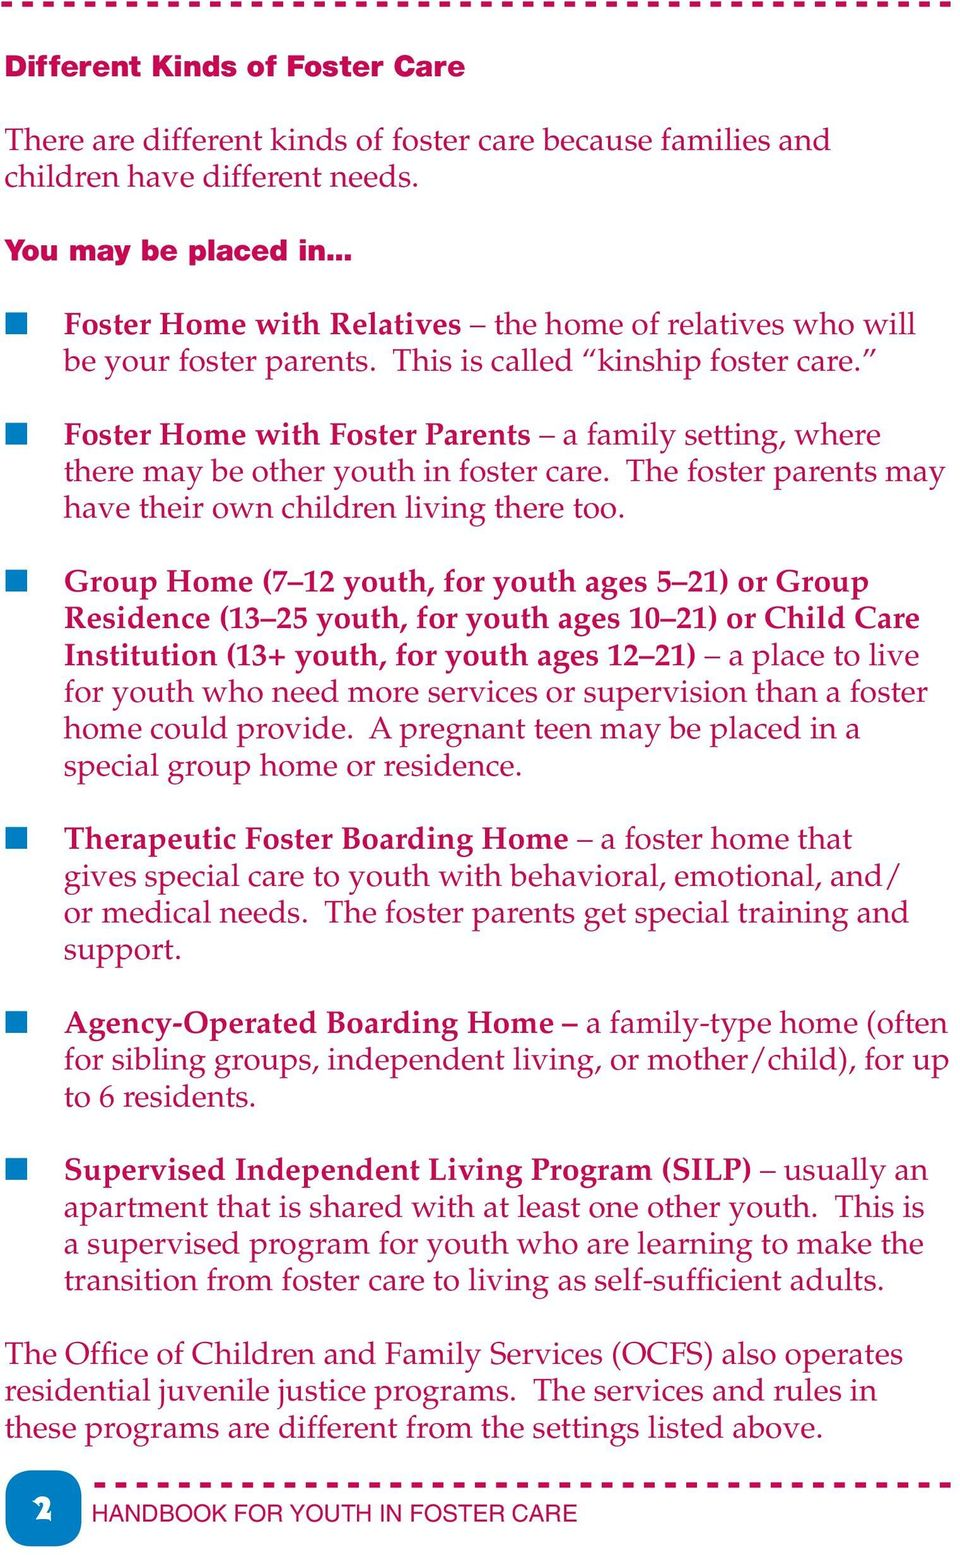 Foster Home with Foster Parents a family setting, where there may be other youth in foster care. The foster parents may have their own children living there too.